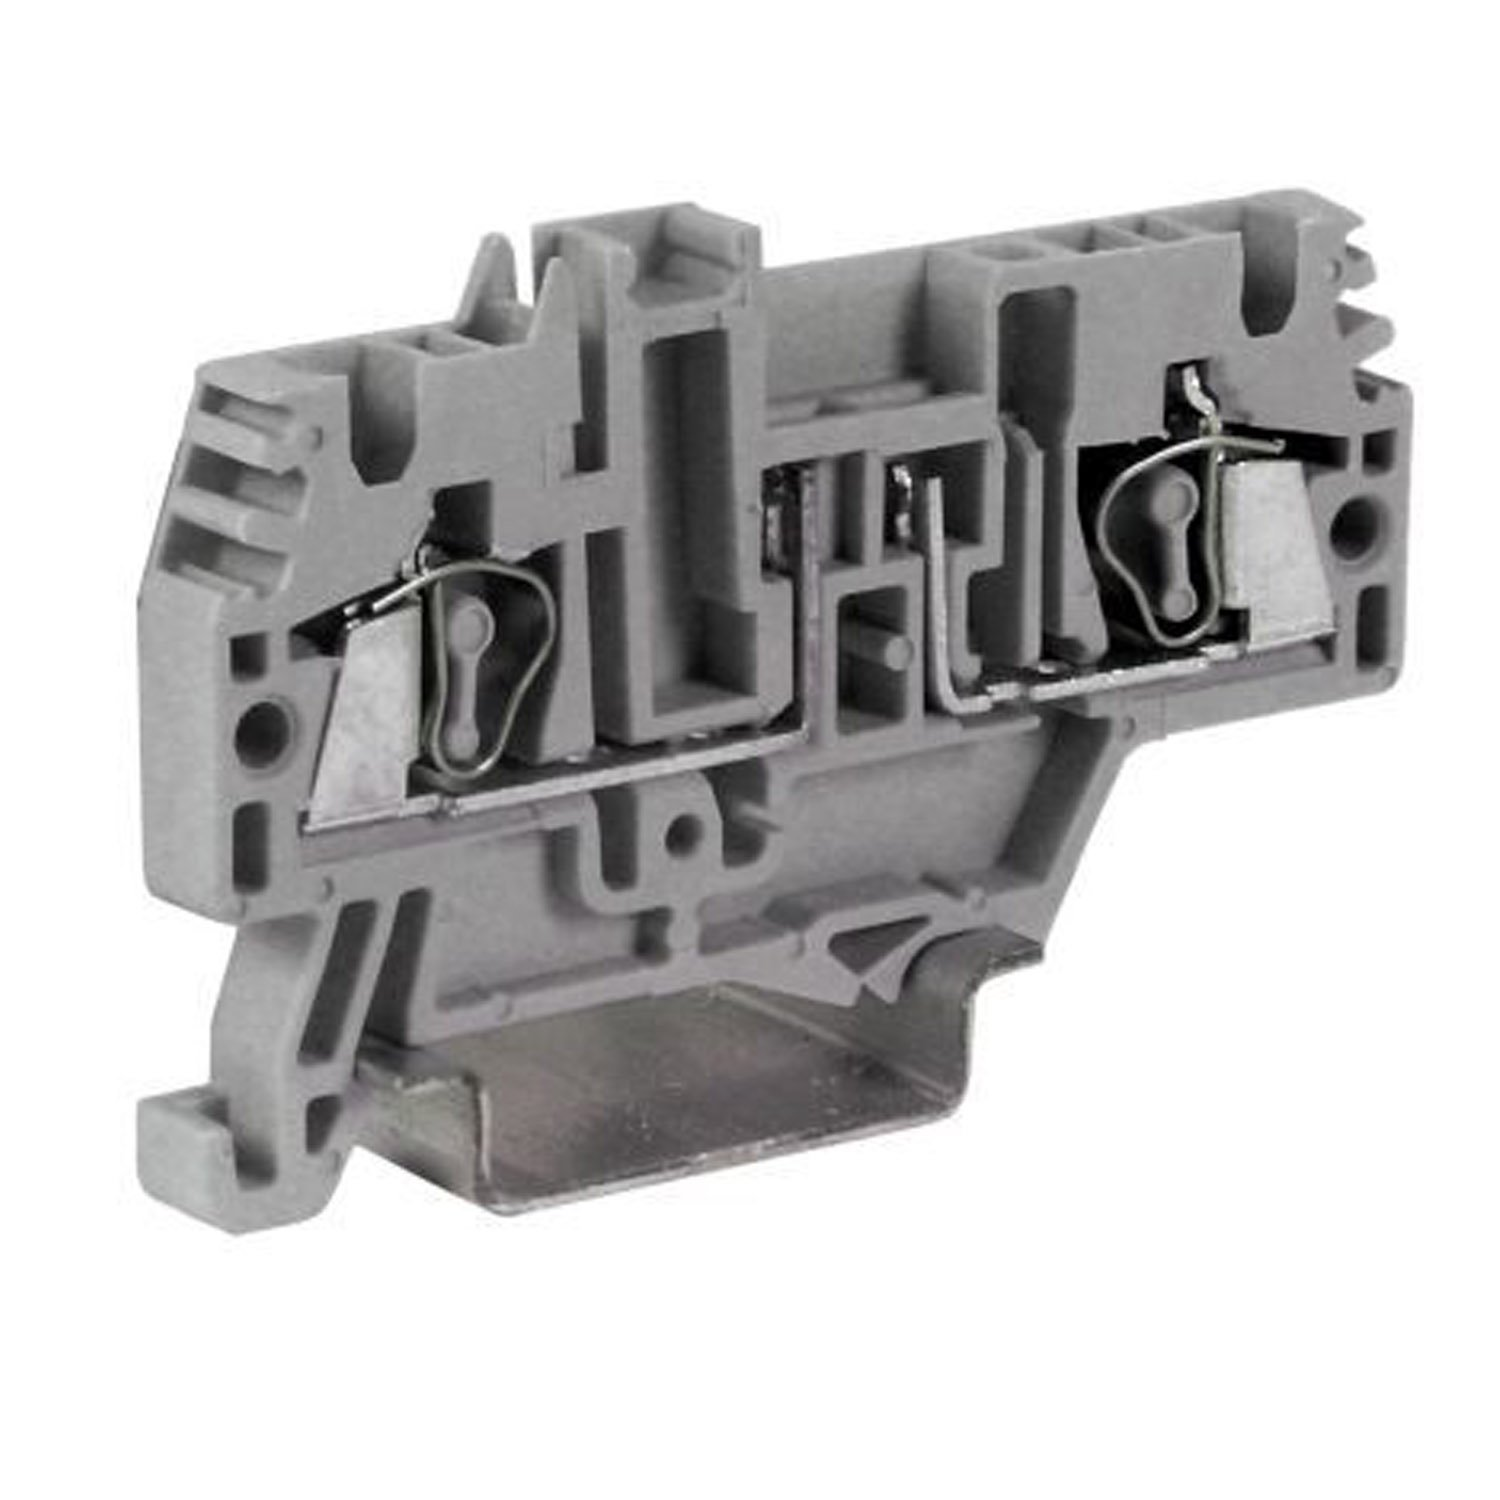 ASI HF300GR Blade Fuse Holder Spring Clamp Terminal Block for CPF05, DIN Rail Mount, 6.3 amp, 600V, 26 to 12 AWG (Pack of 80)